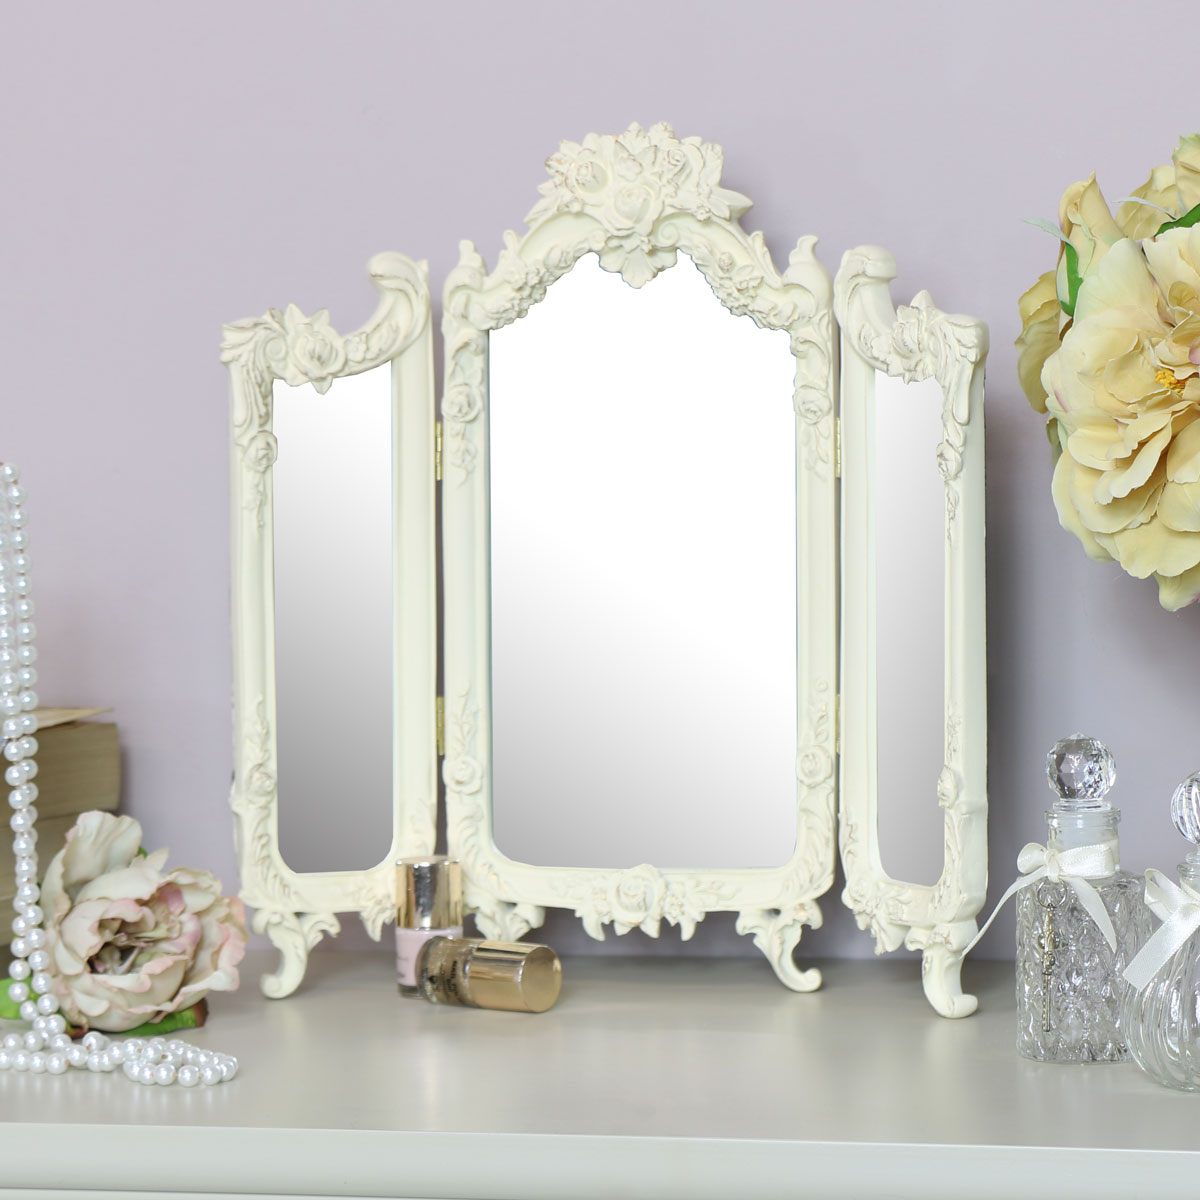 Small Ornate Rose Triple Mirror  - 38cm x 38cm